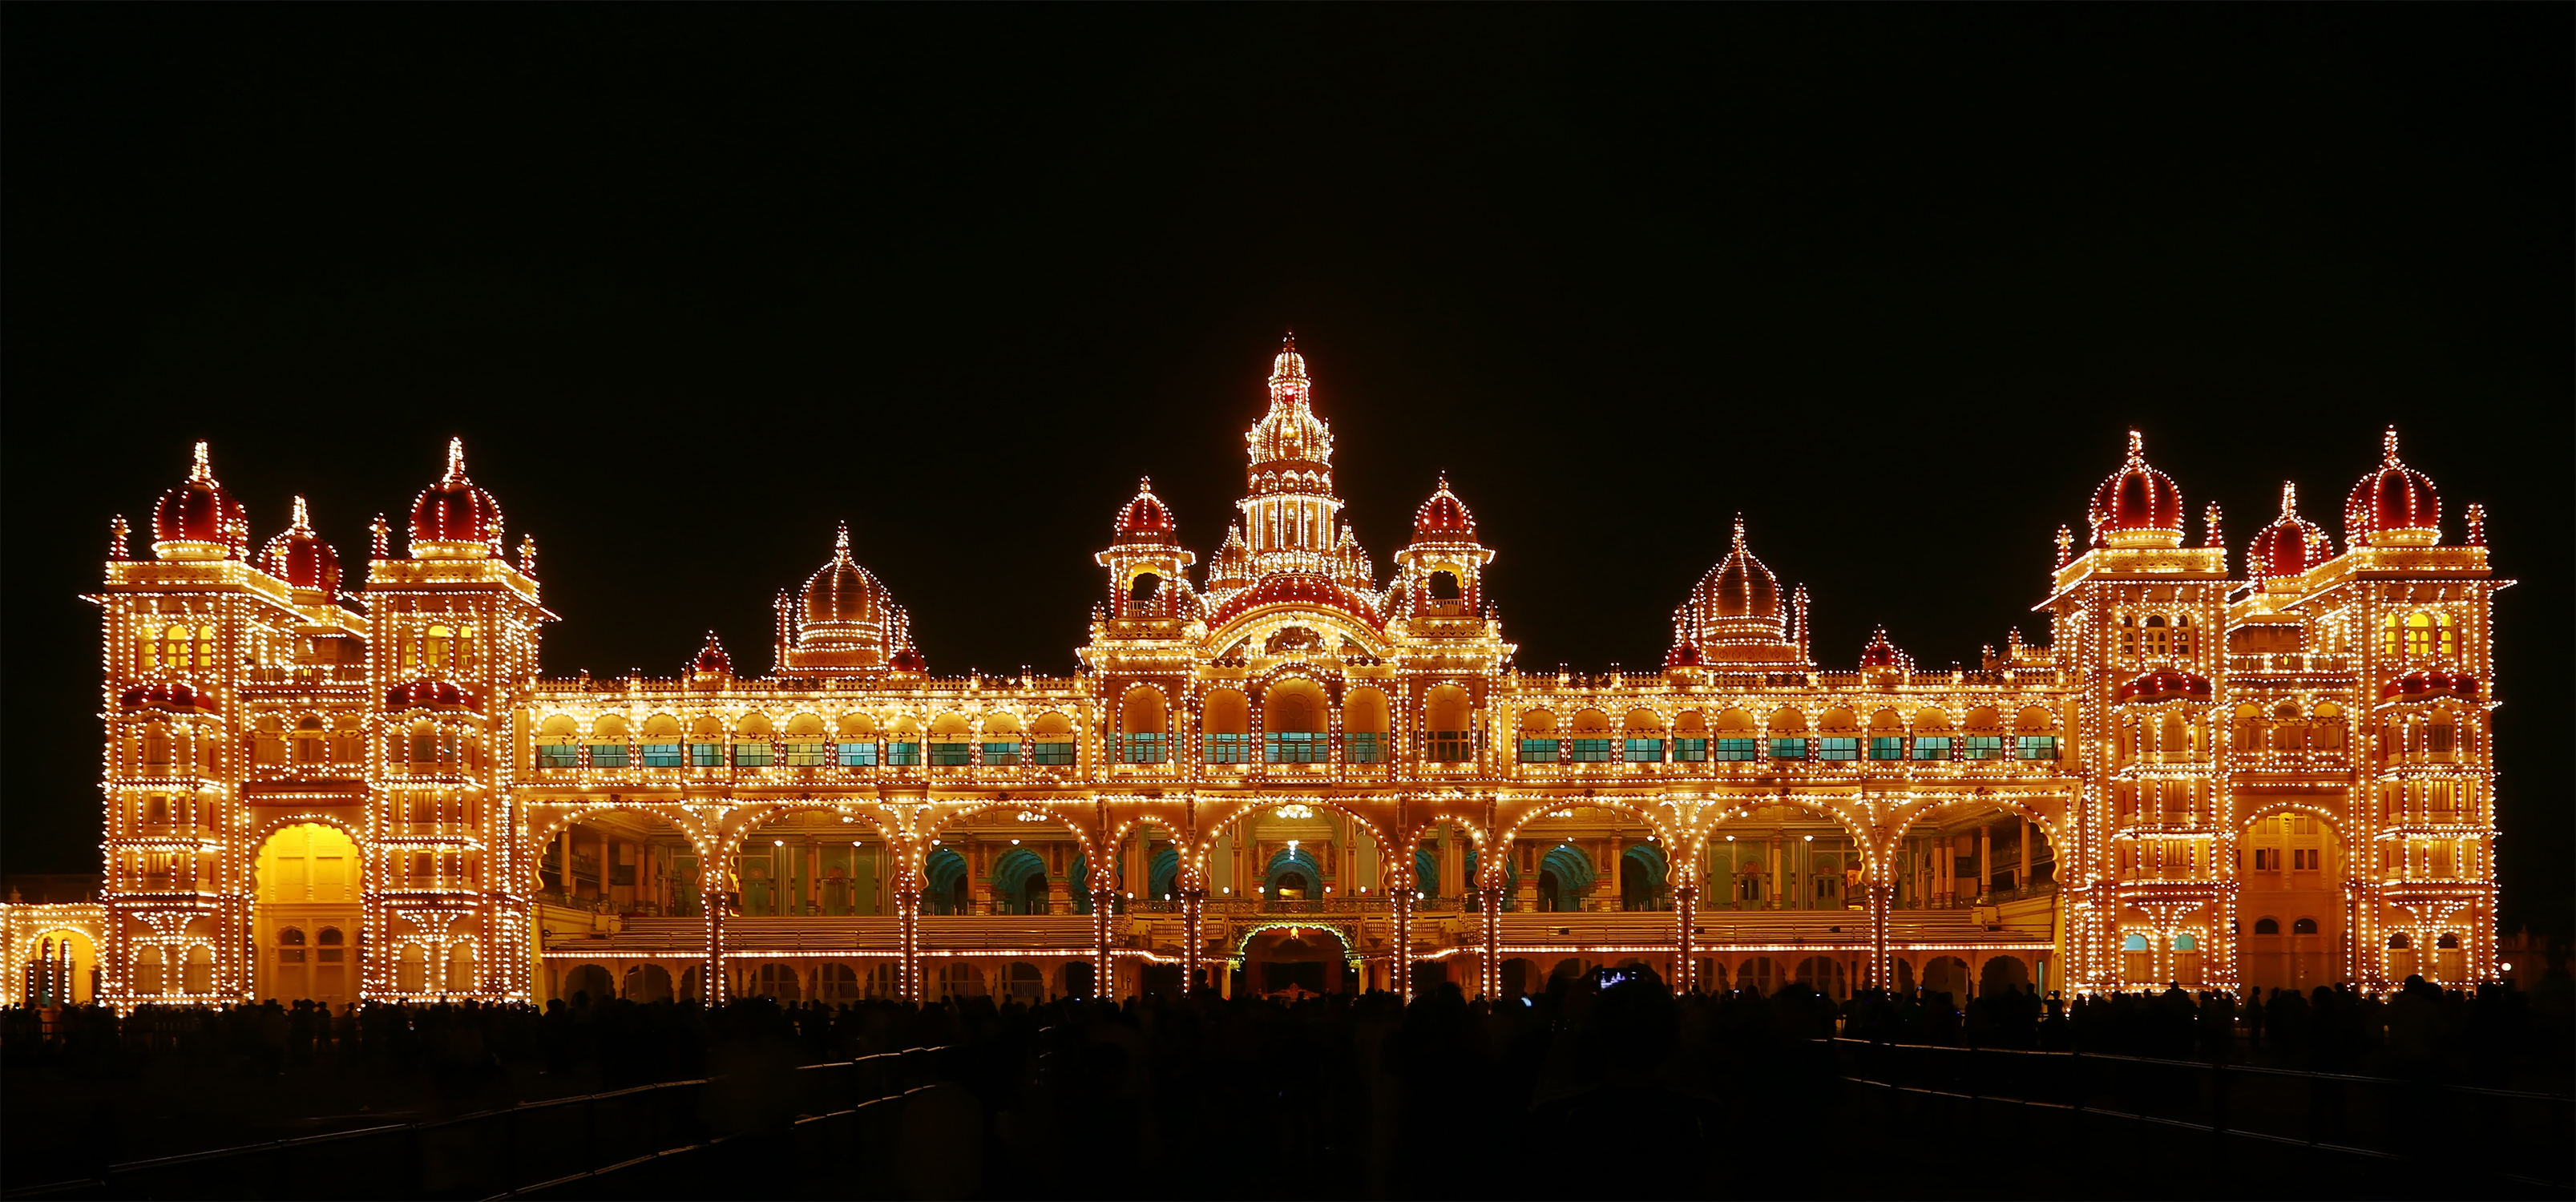 mysore_palace_illuminated